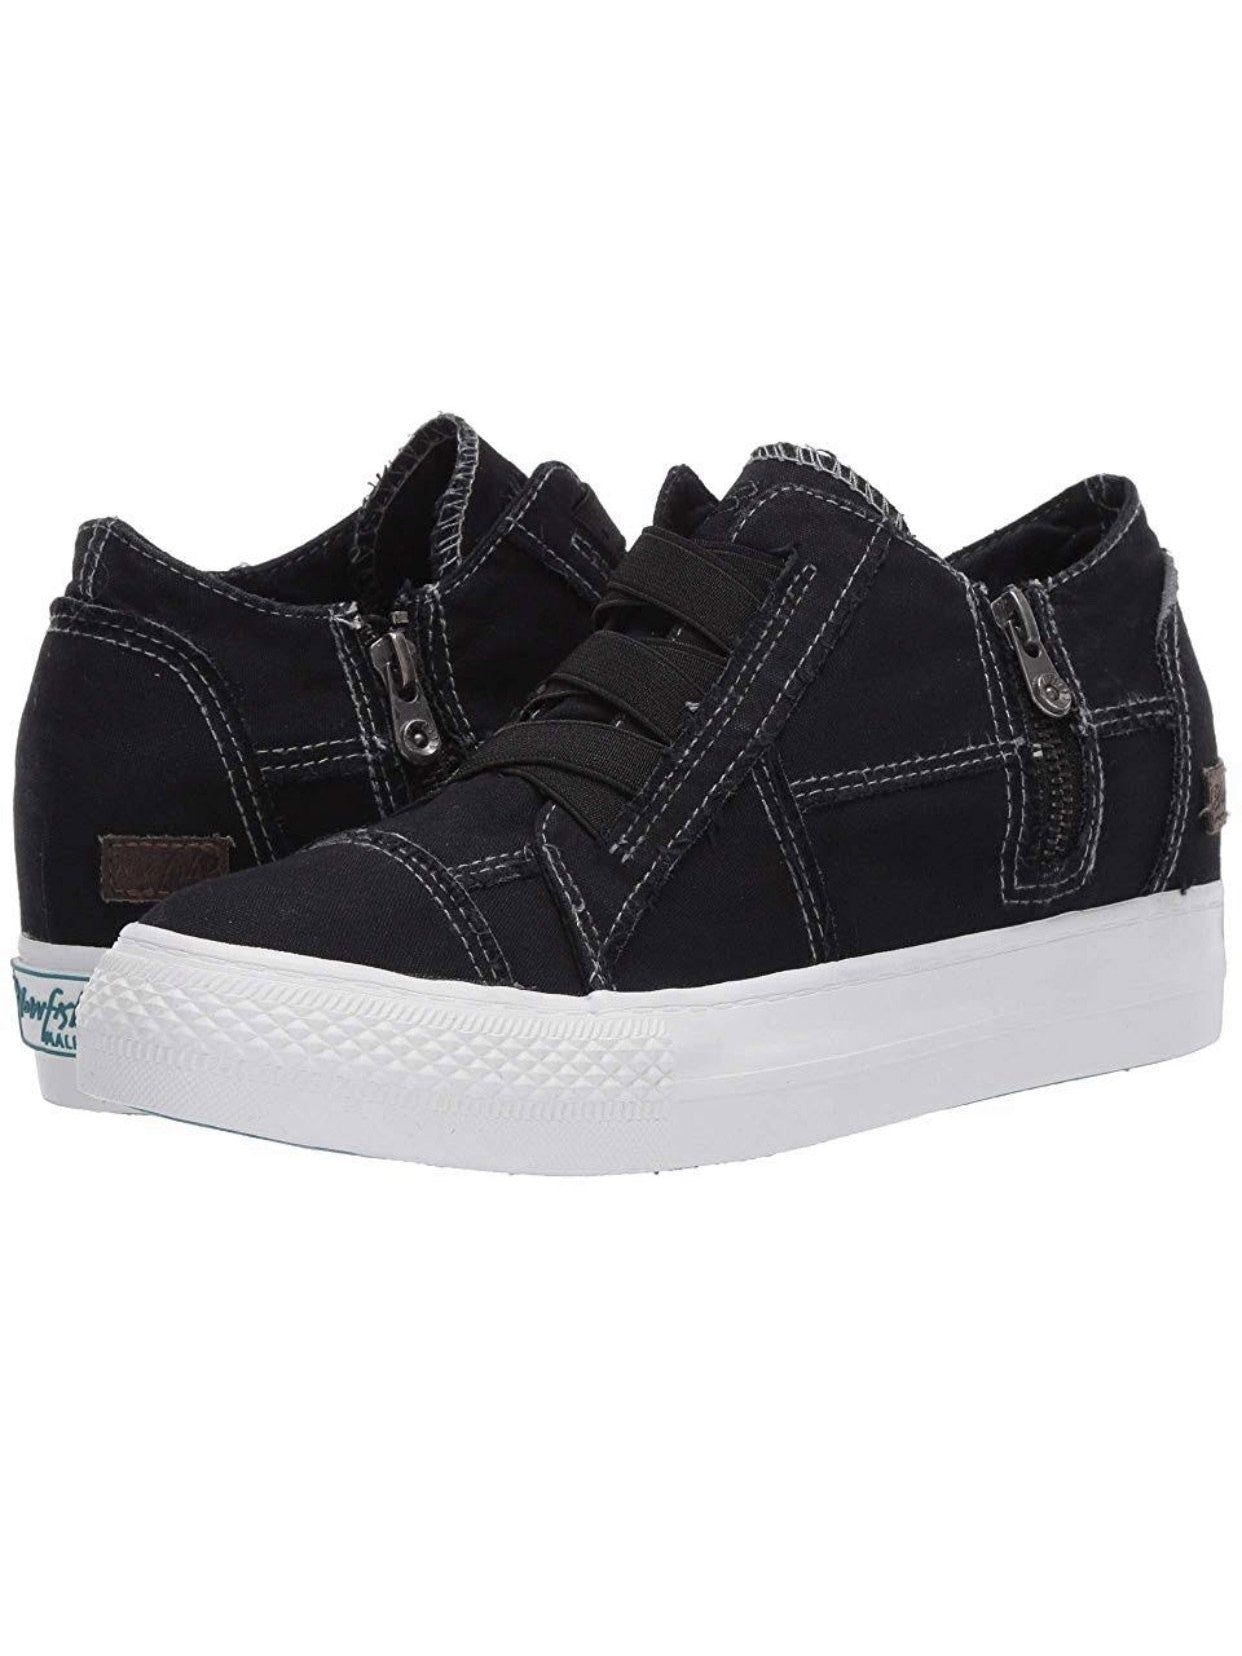 THE BLOWFISH MAMBA WEDGE SNEAKERS - VINTAGE BLACK